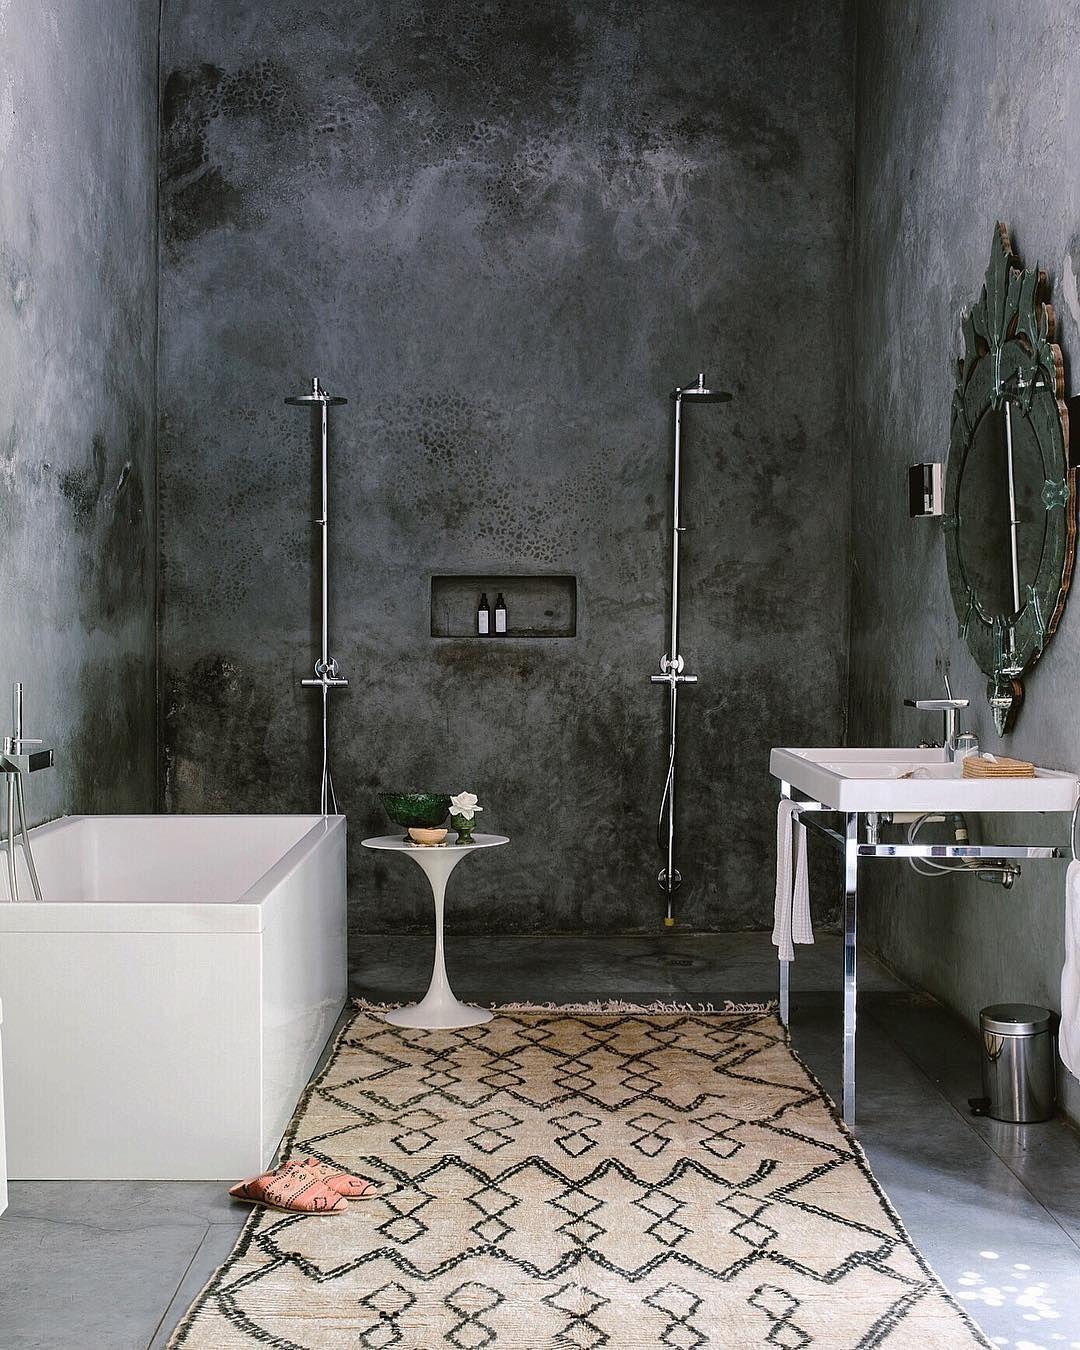 Carley Page Summers On Instagram Loved This Shoot In Morocco With Semikahtextiles Rugs We Had A Blast Moroccan Bathroom Bathroom Interior Concrete Bathroom